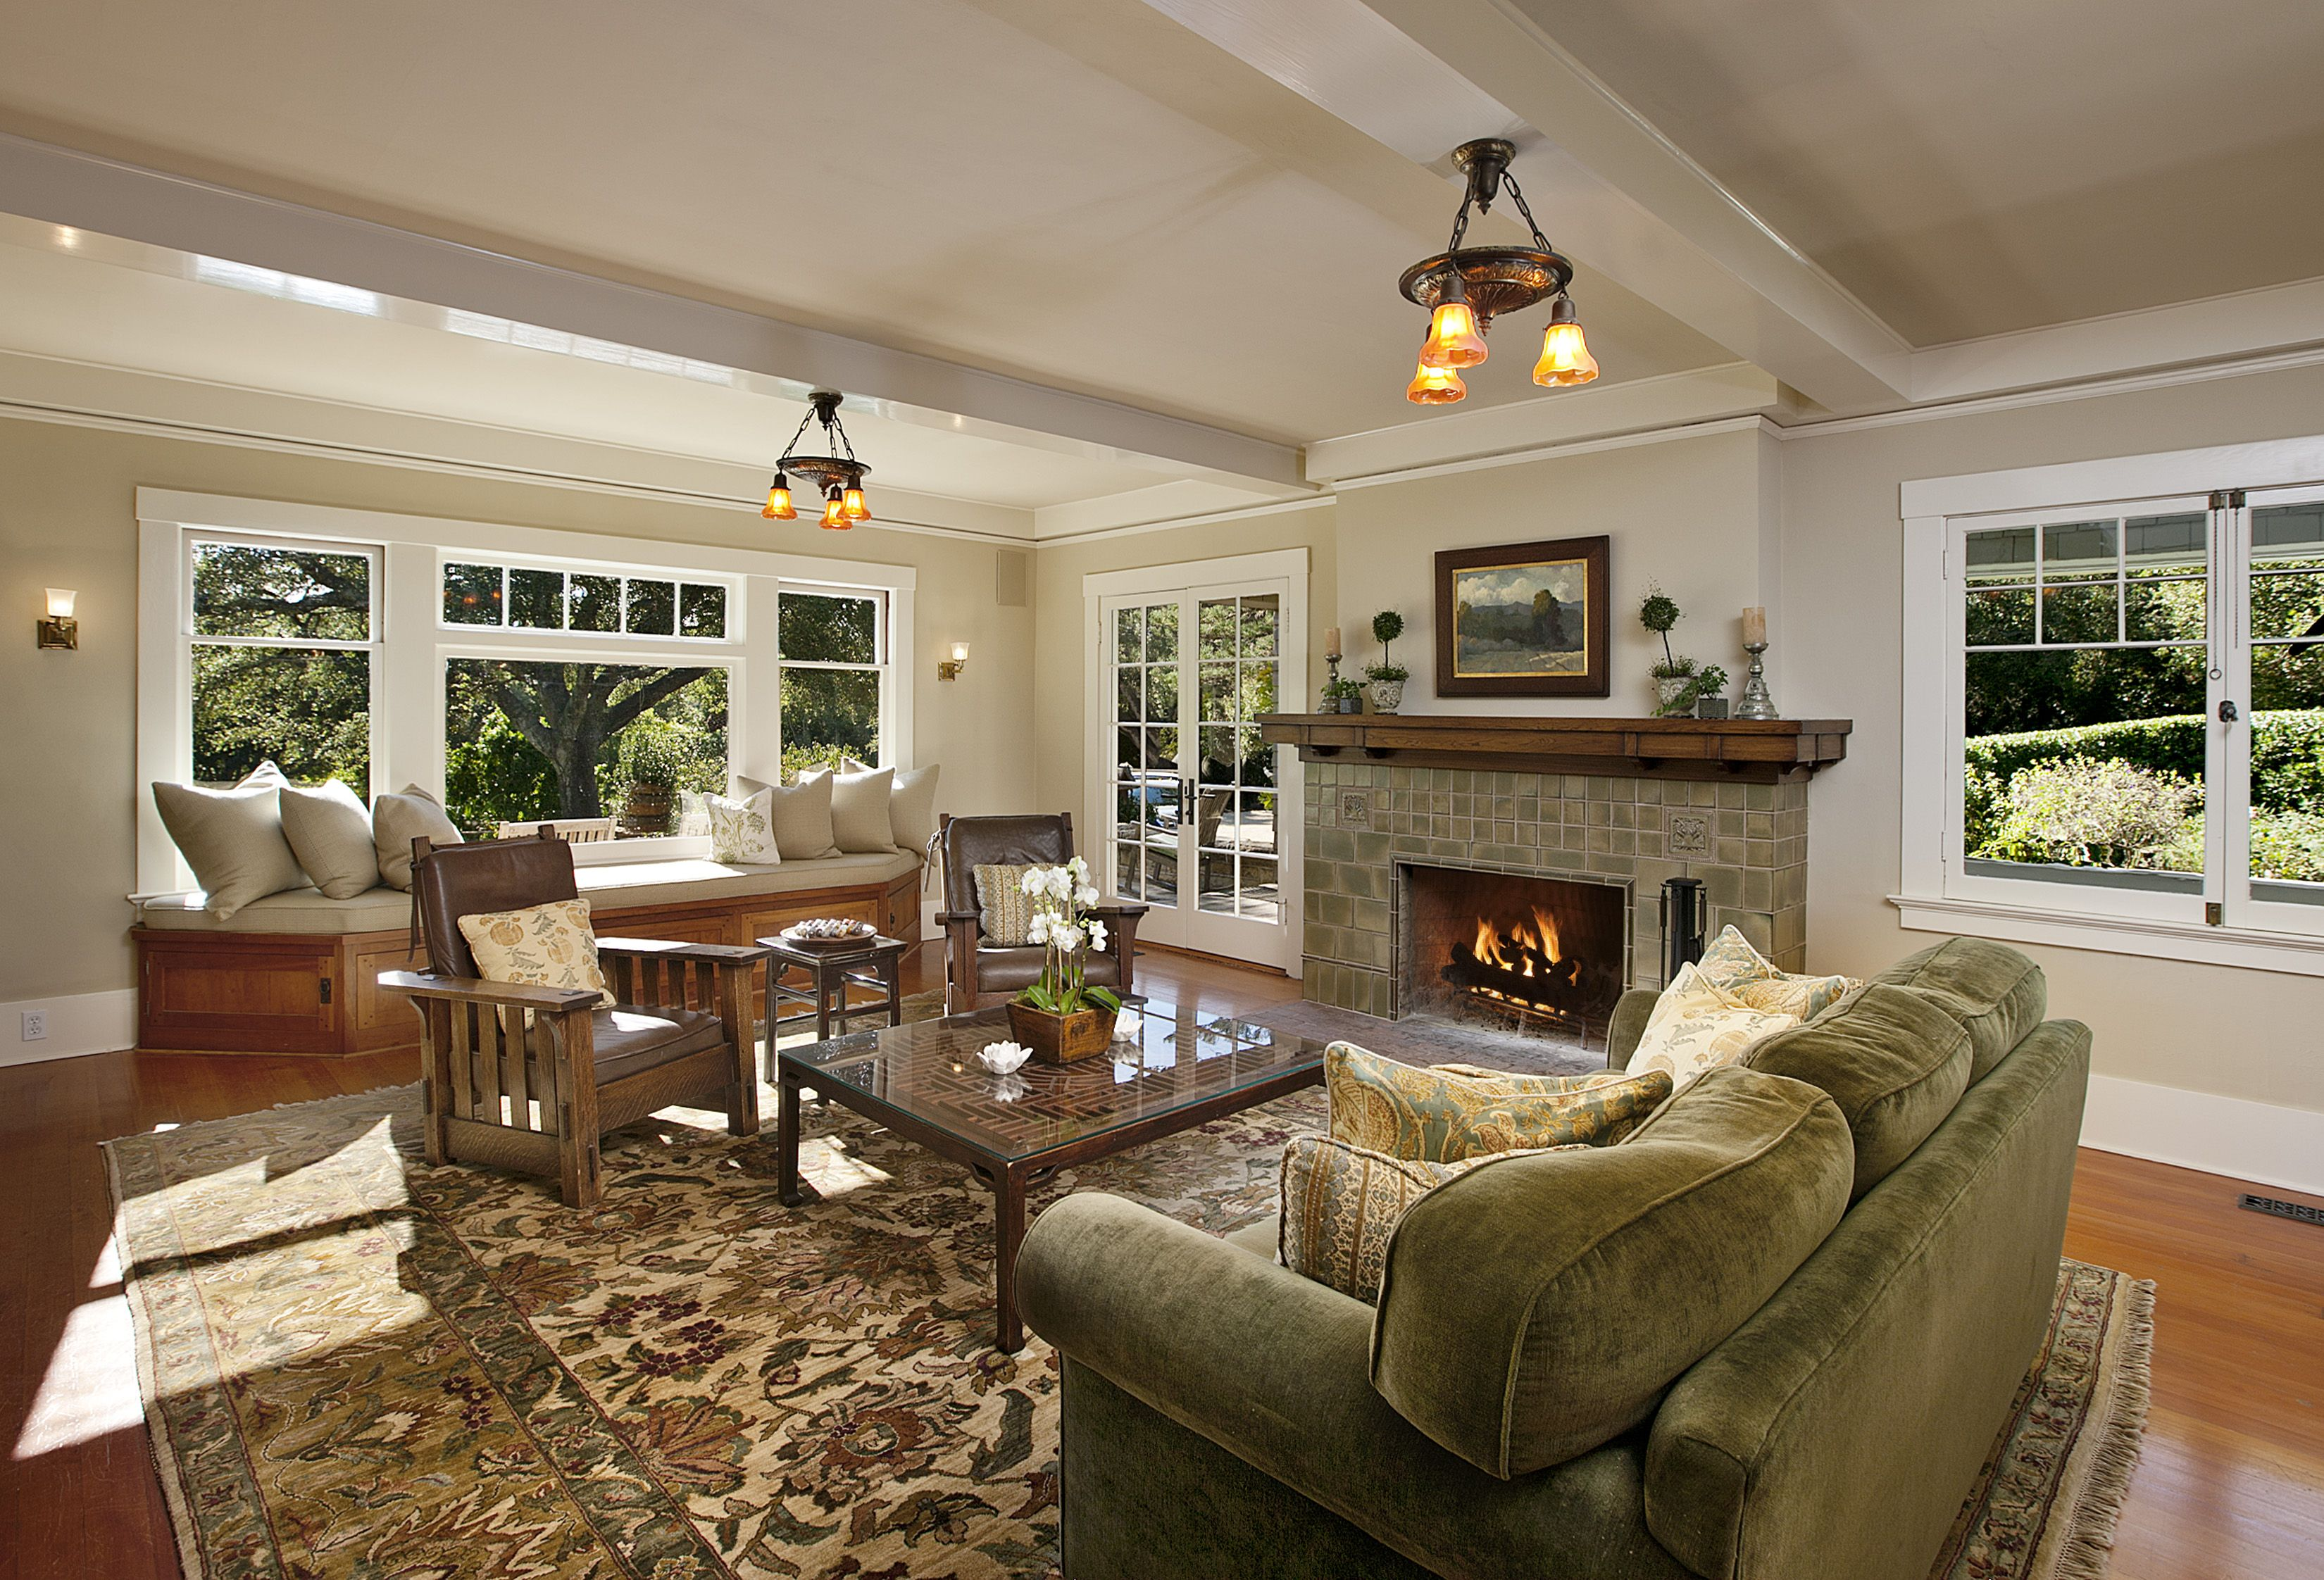 craftsman style decorating popular home styles for 2012 montecito real estate - Ranch Style Decor